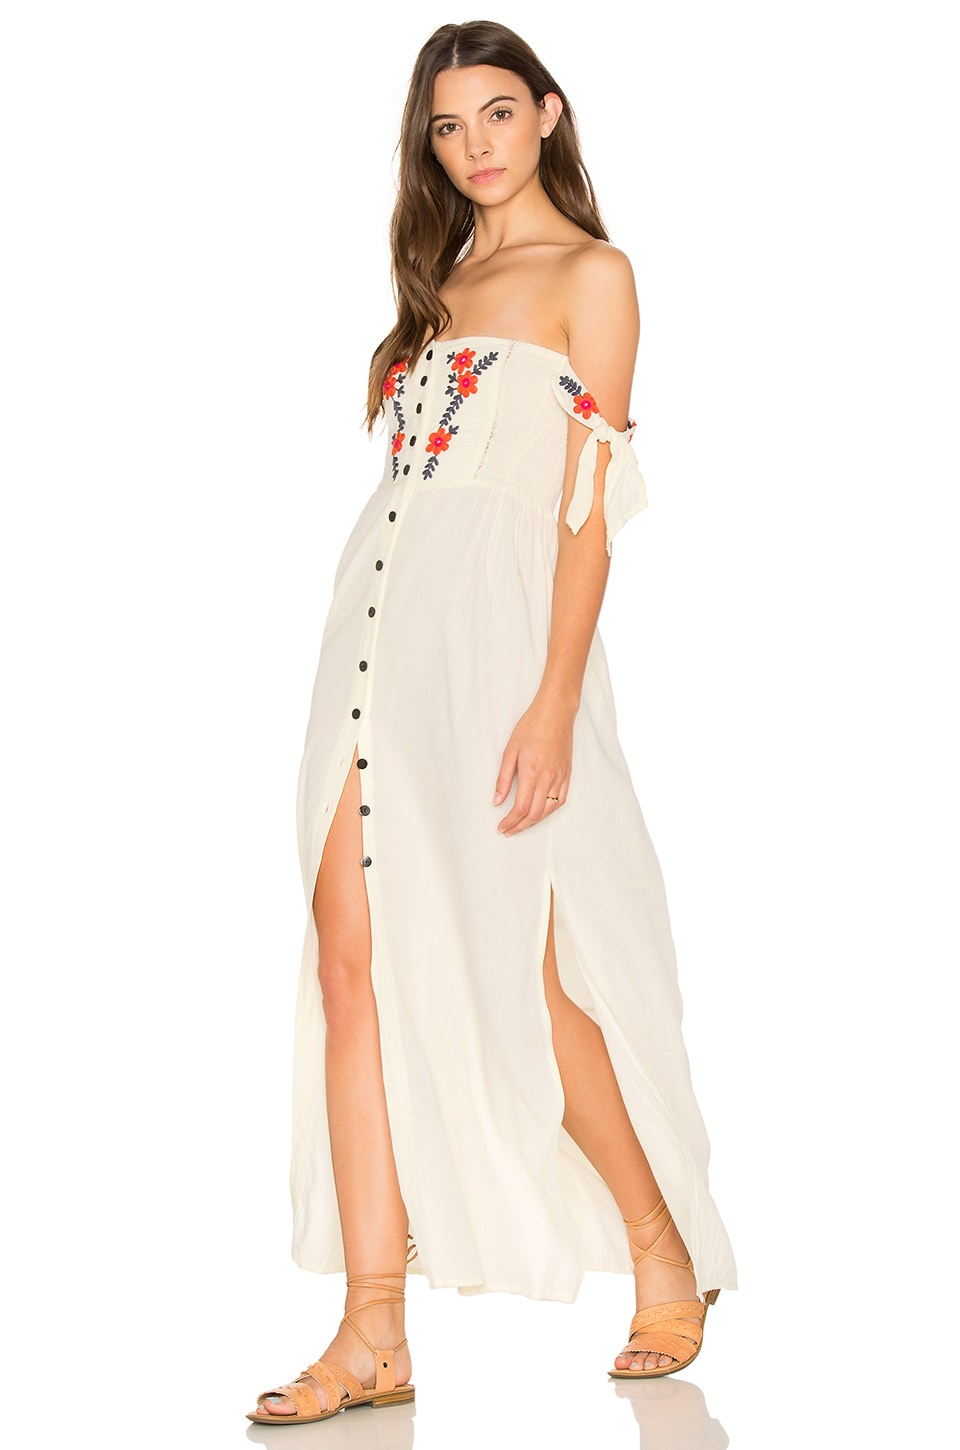 Cleobella Solita Maxi Dress in Ivory